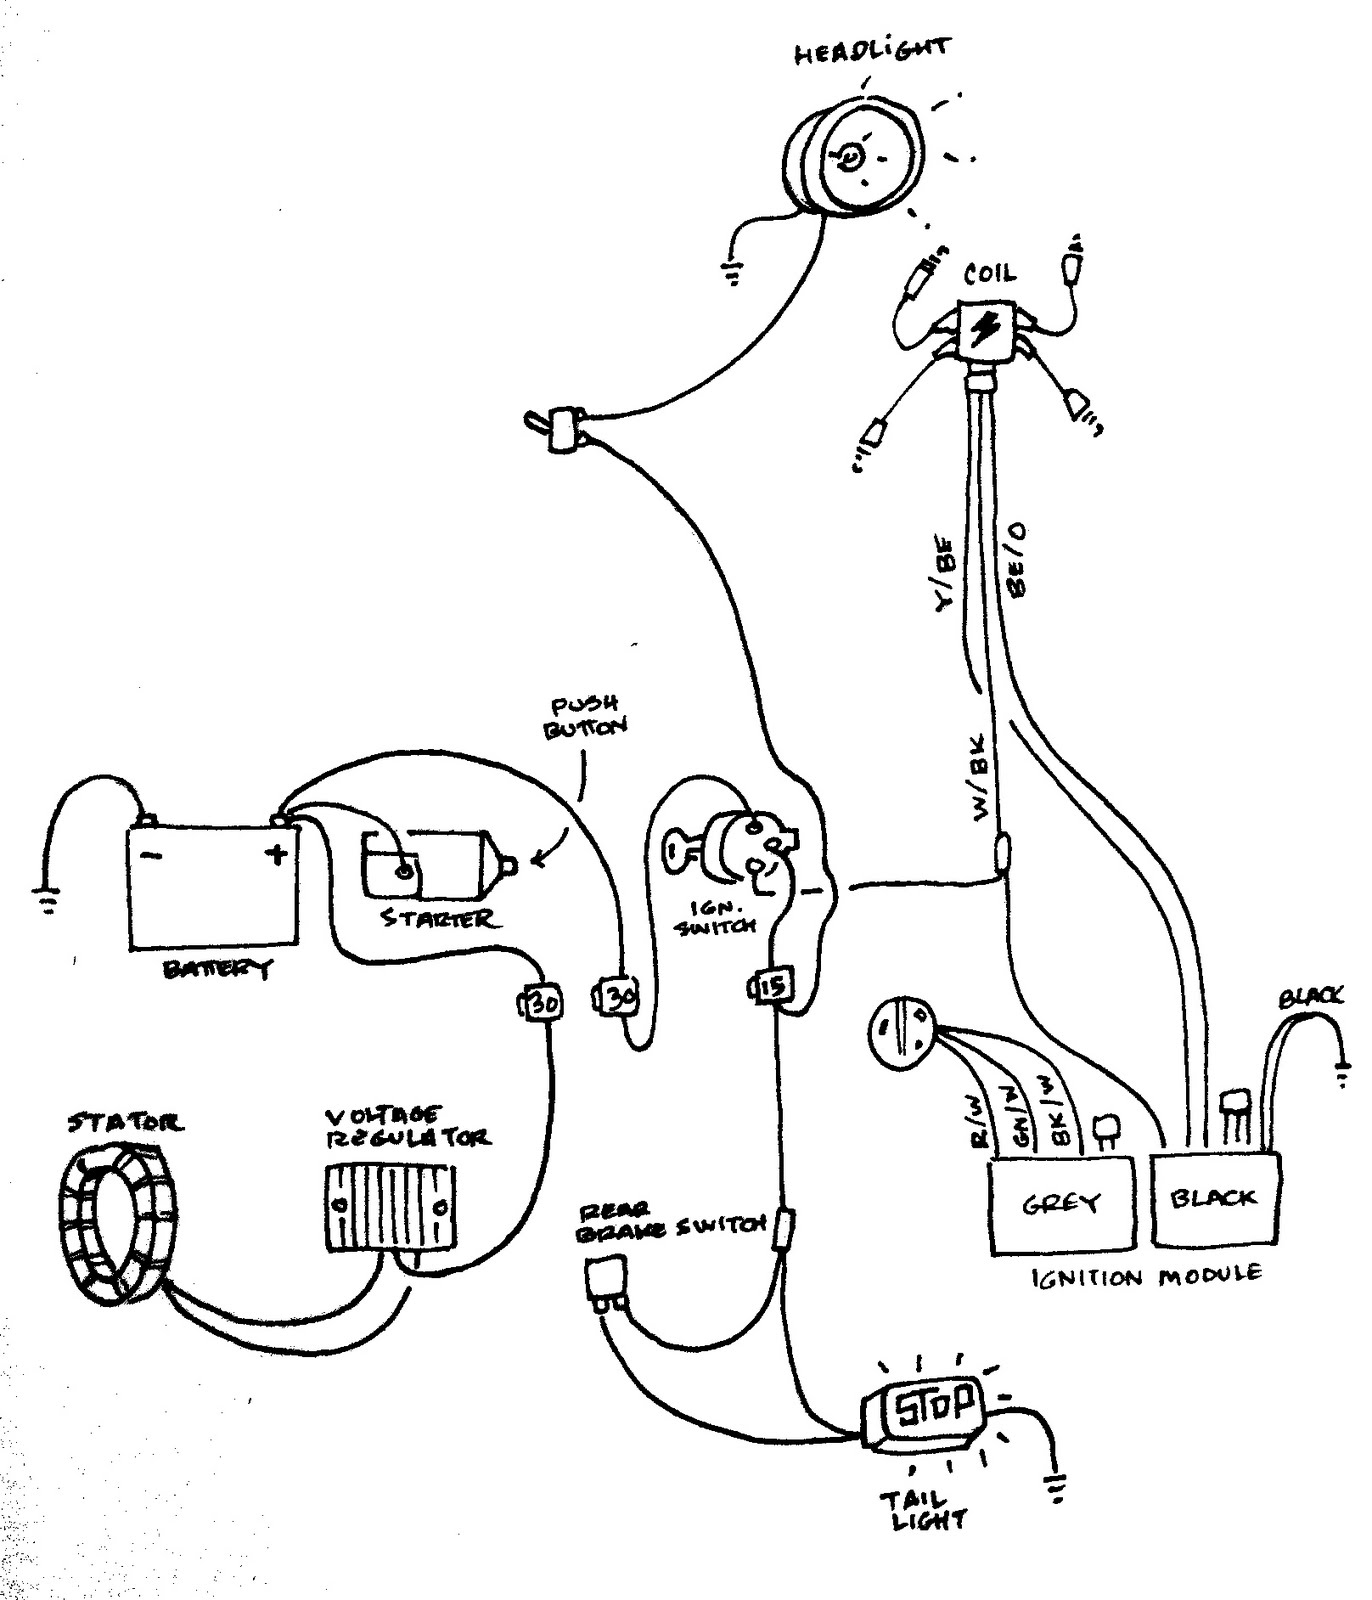 49cc Parts Diagram Great Design Of Wiring Wildfire 2 Stroke With Electric Starter Get Scooter 50cc Fuel